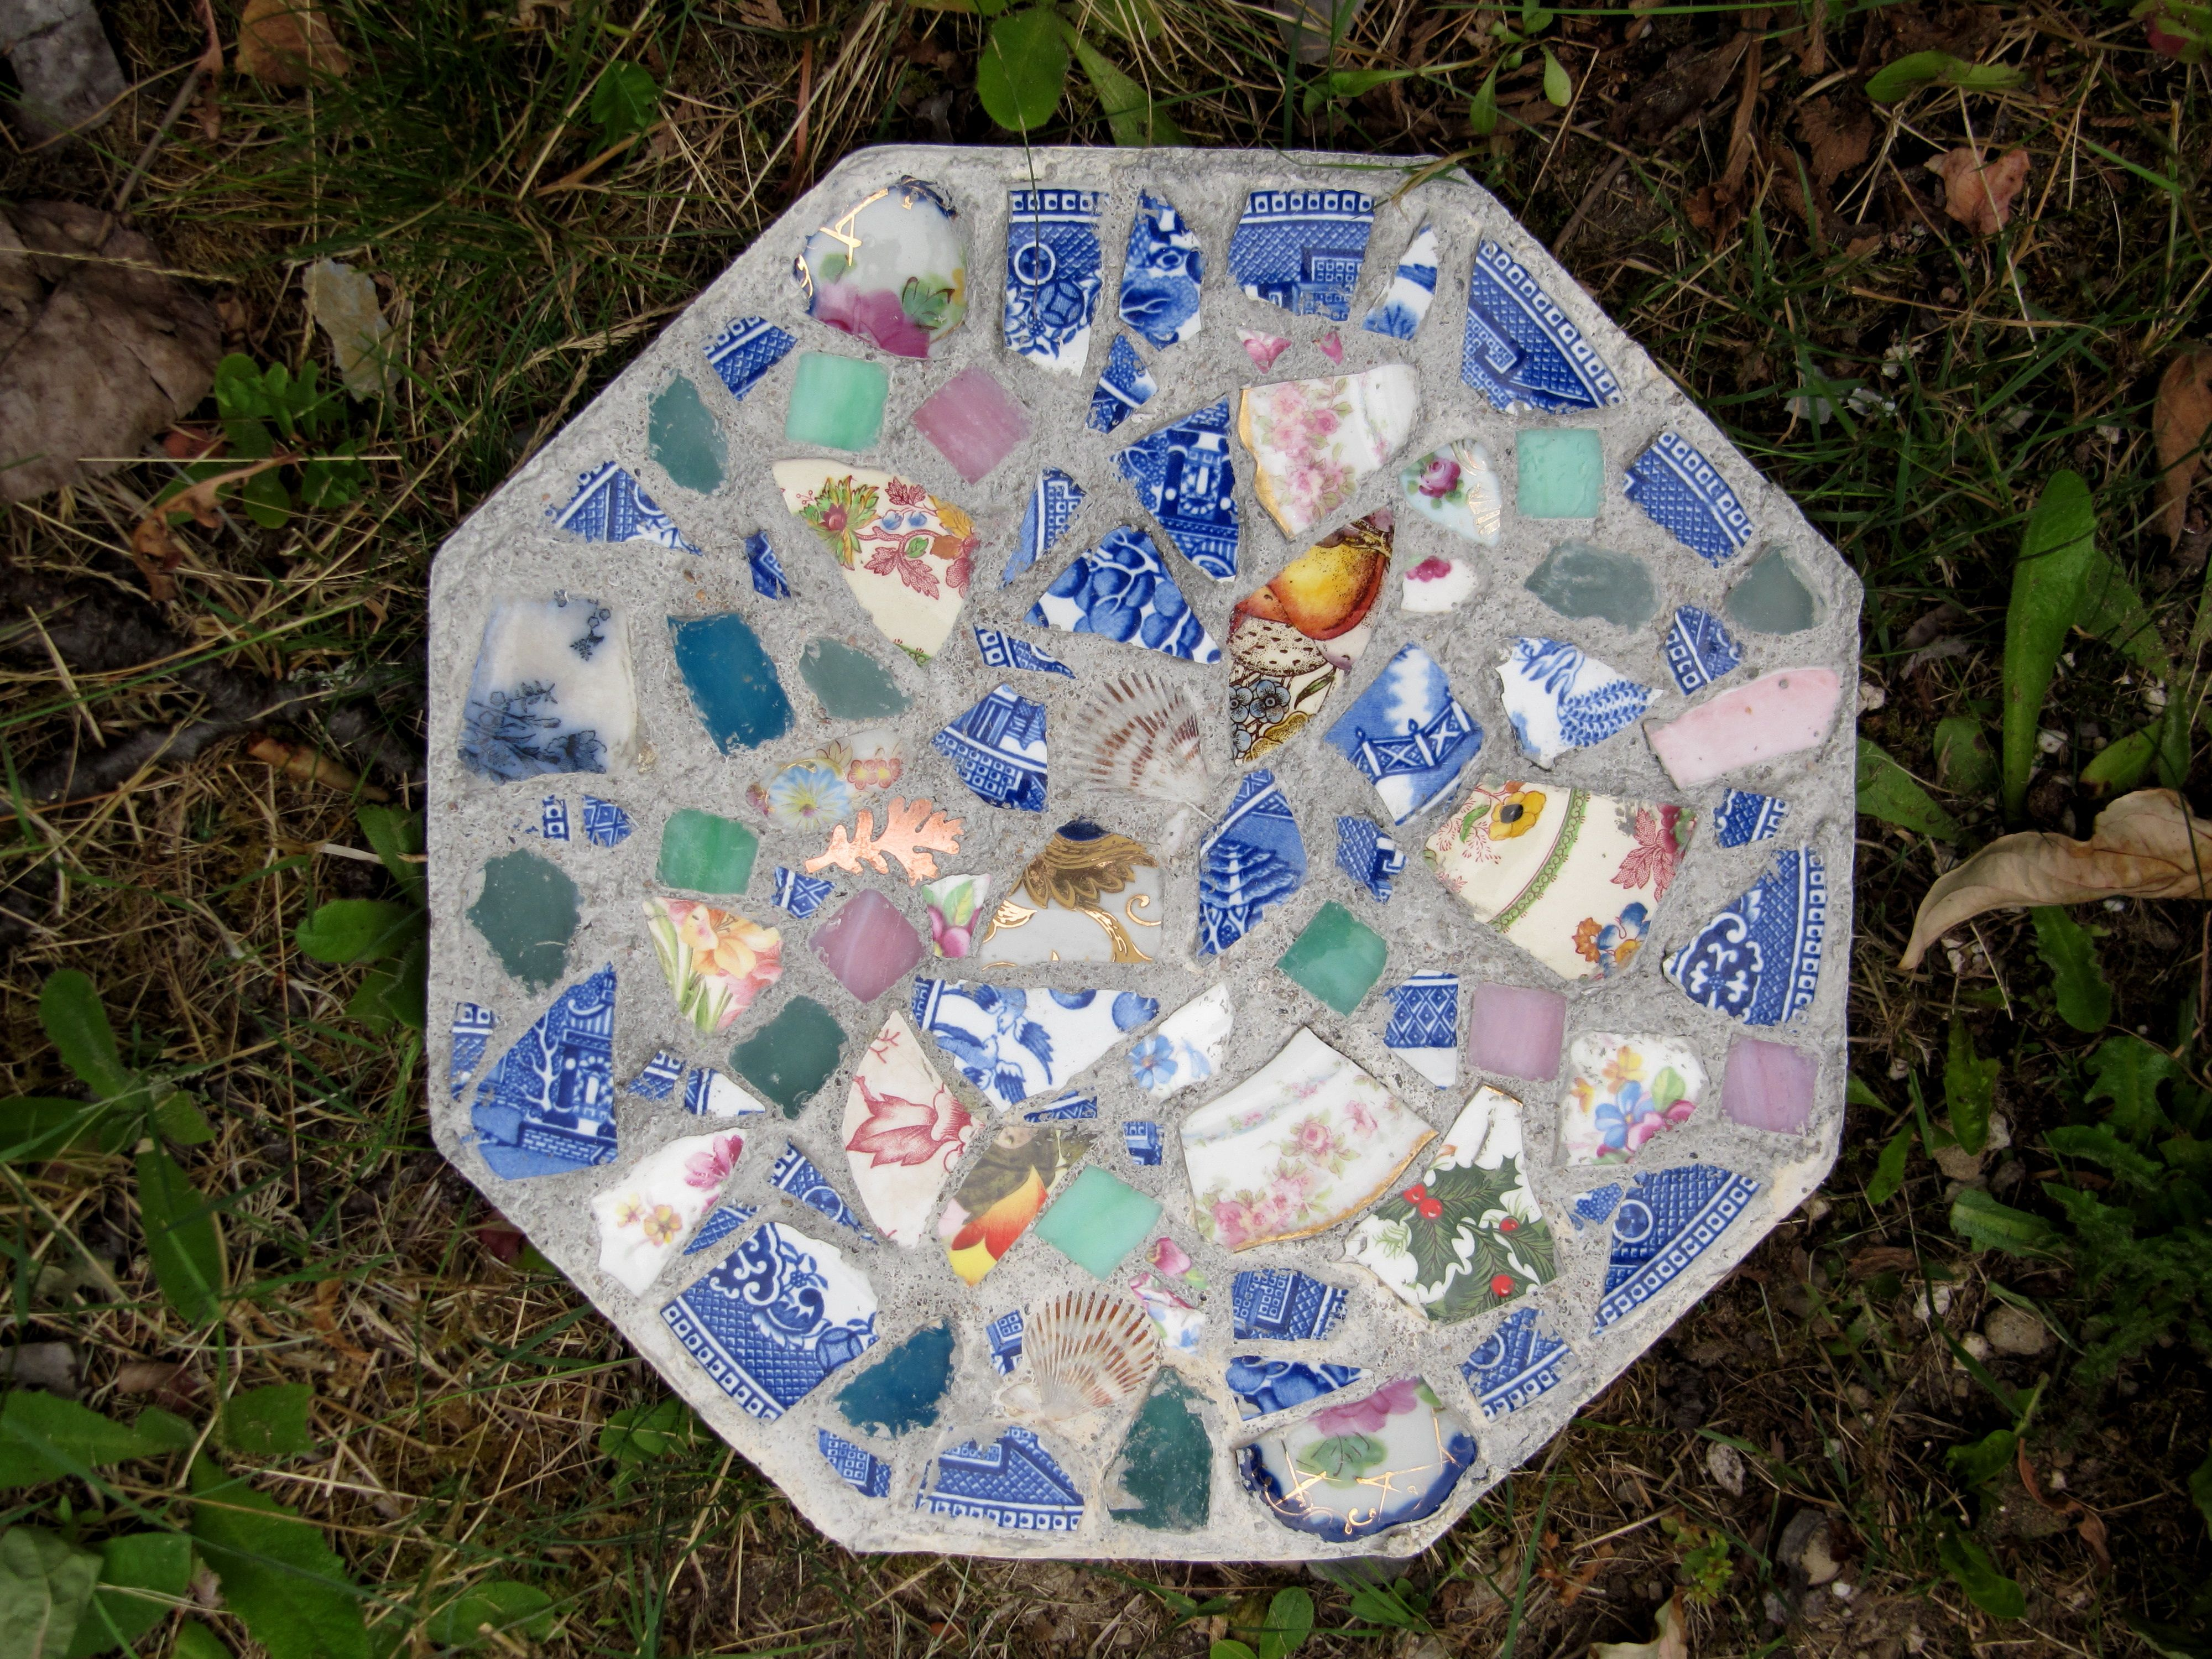 Diy Stepping Stones Stepping Stone Made Of Broken Pottery And Glass By Emily Hickman